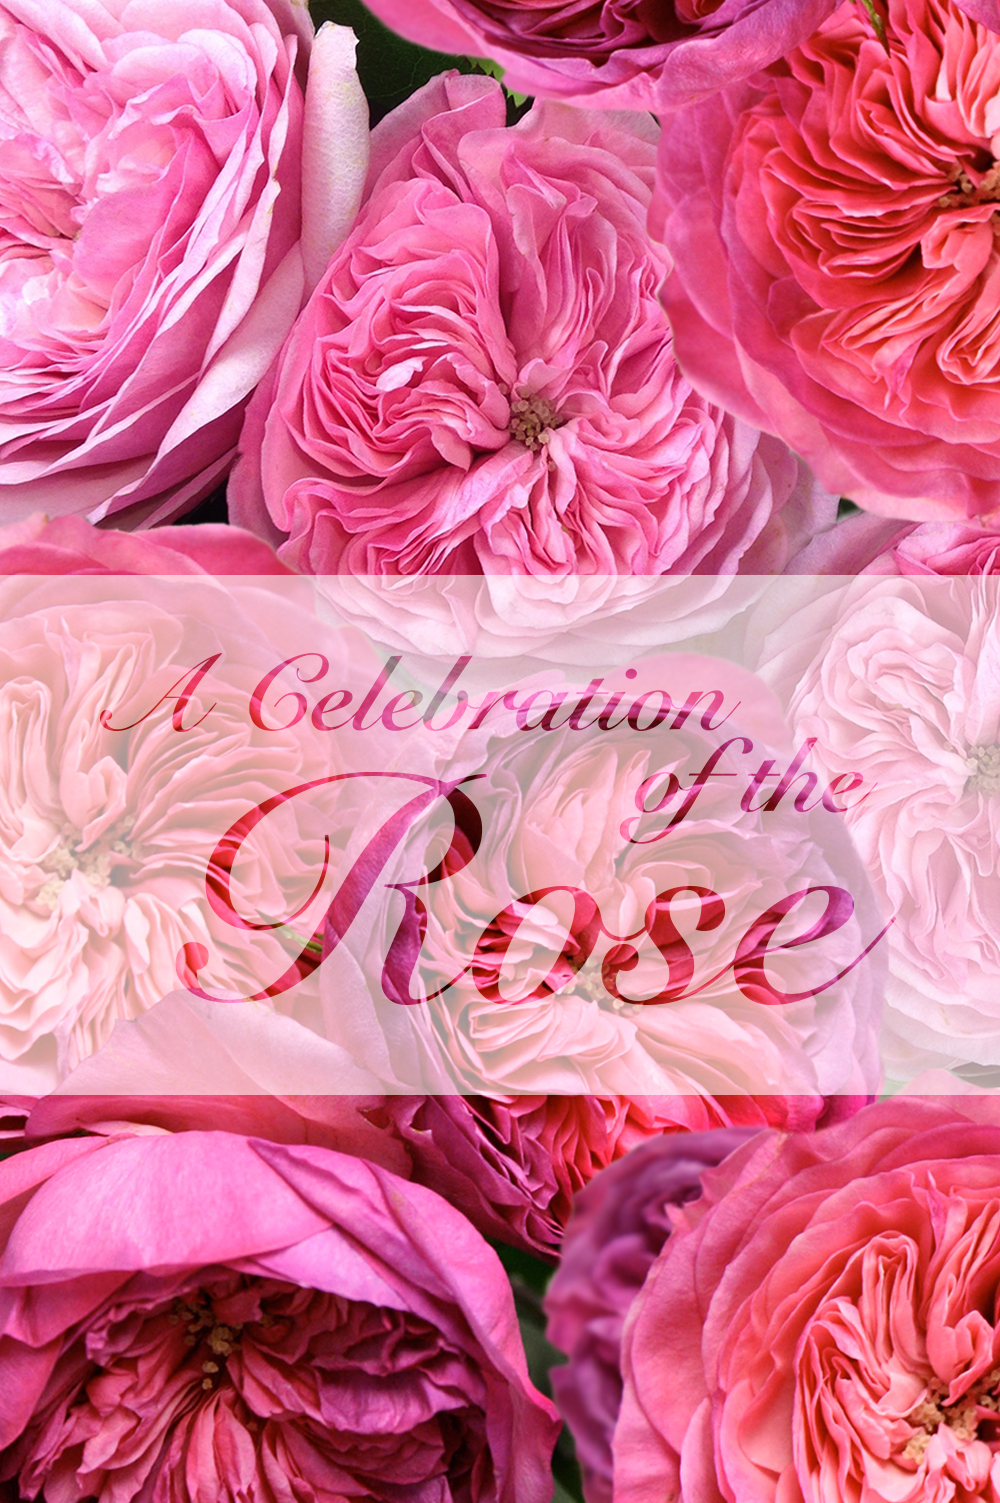 'A Celebration of the Rose' will run at Neill Strain Floral Couture's The Flower Lounge May 18-23.